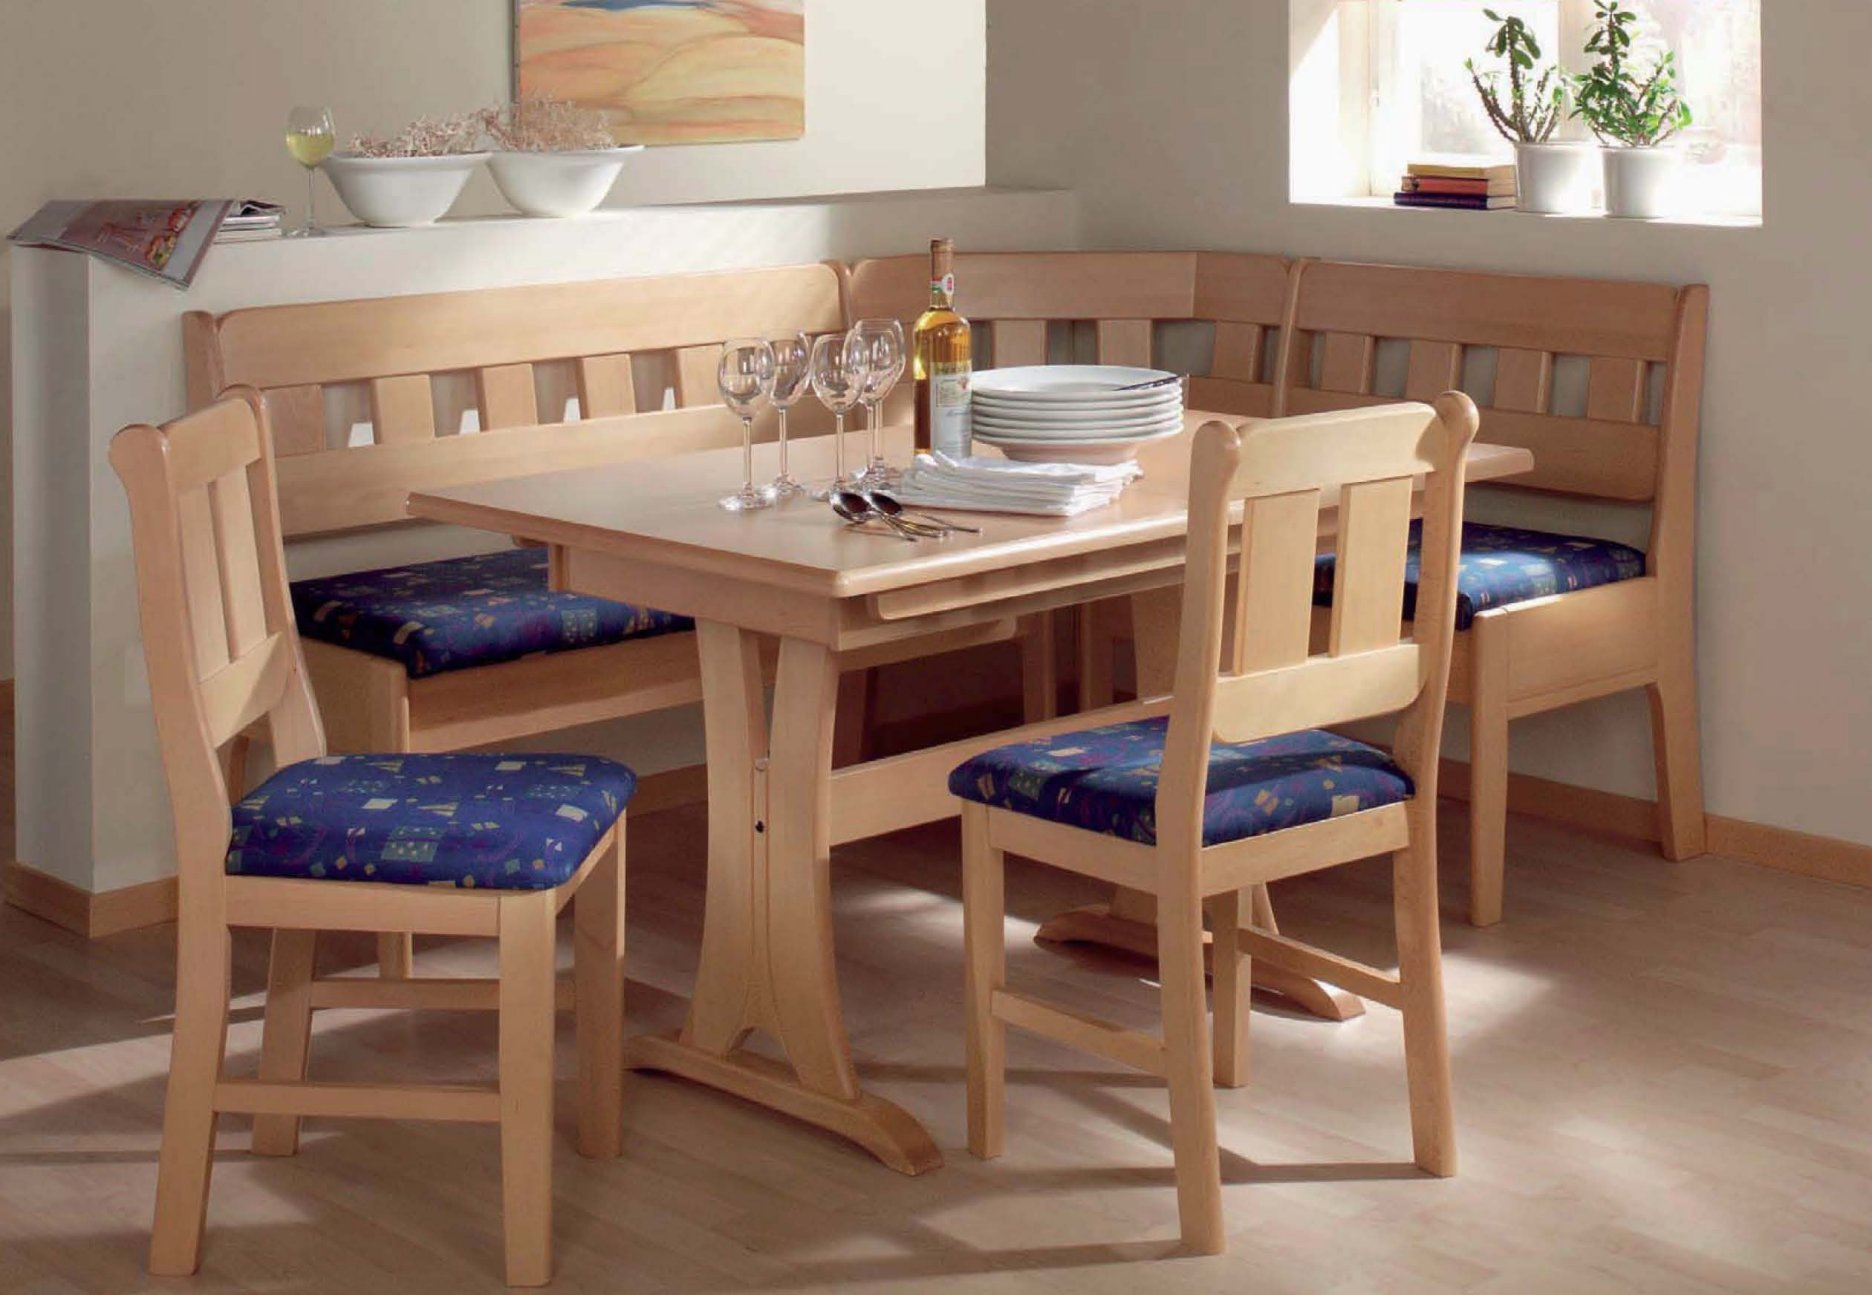 Breakfast nook tables save your kitchen from the numerous ...